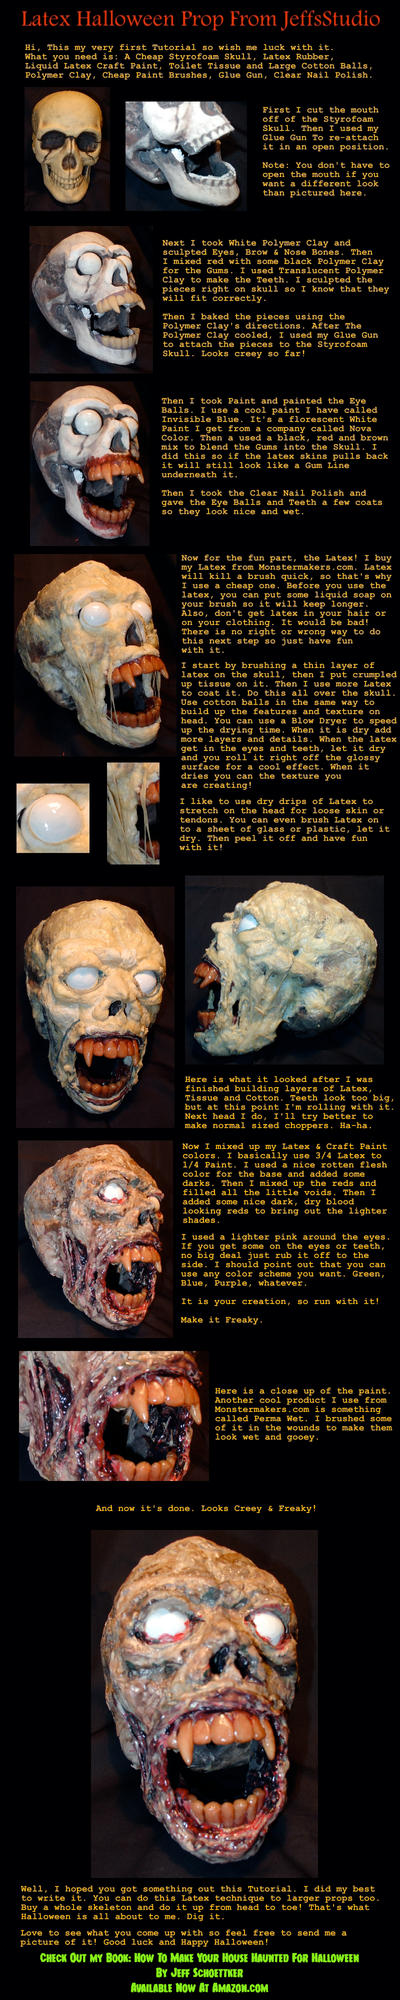 Halloween Latex Head How 2 by JeffsStudio